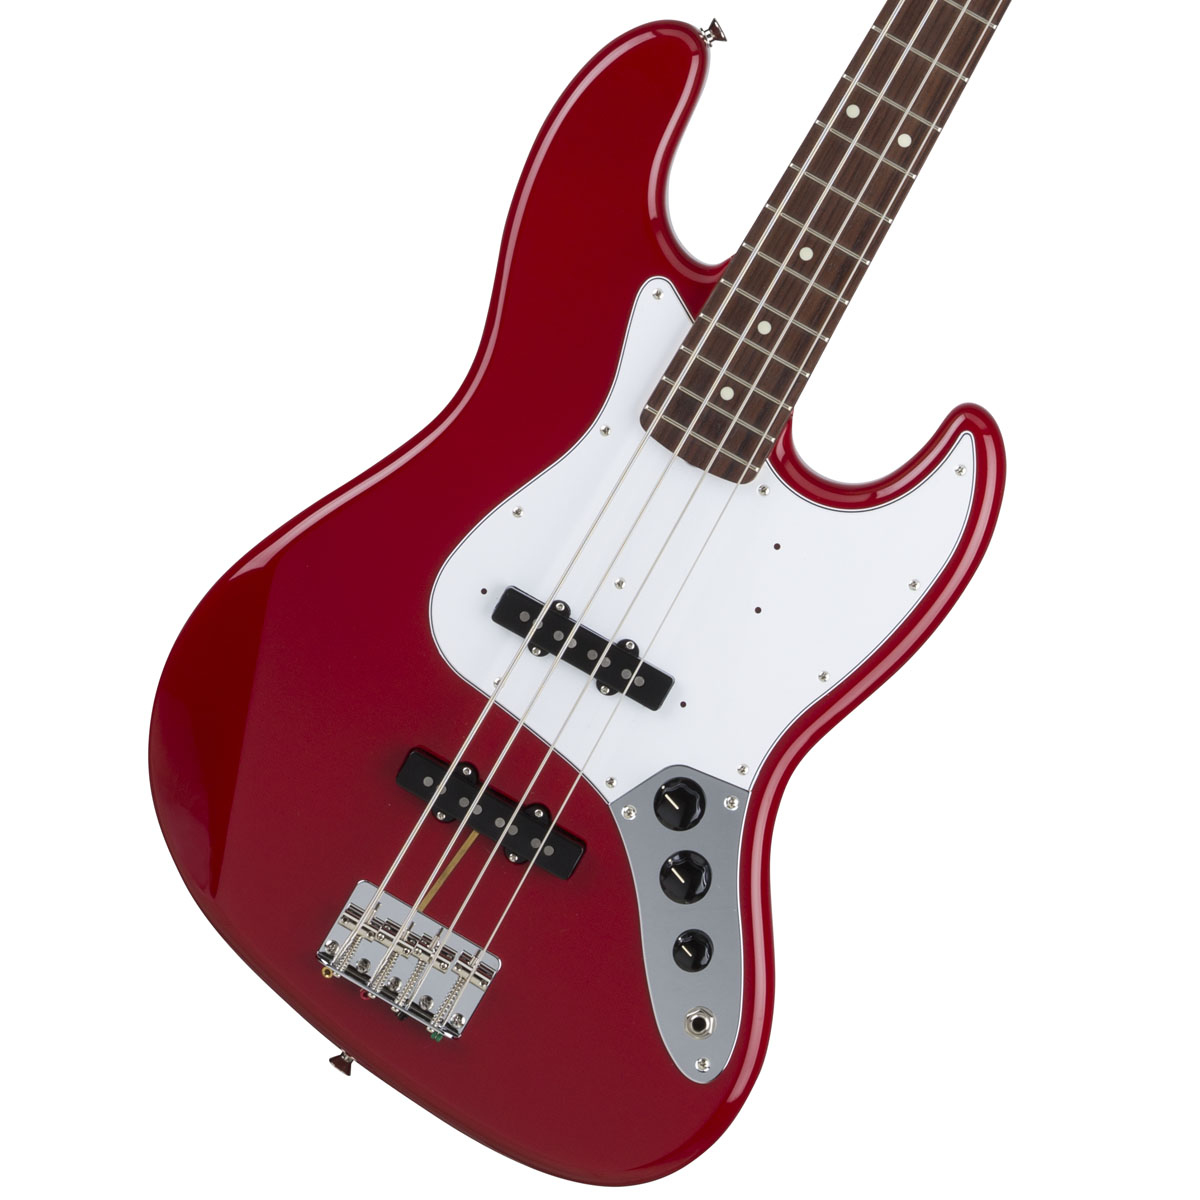 Fender / Made in Japan Hybrid 60s Jazz Bass Torino Red 《FENDERケアキットプレゼント/+671038200》《ベース弦1setプレゼント!/+811131900》